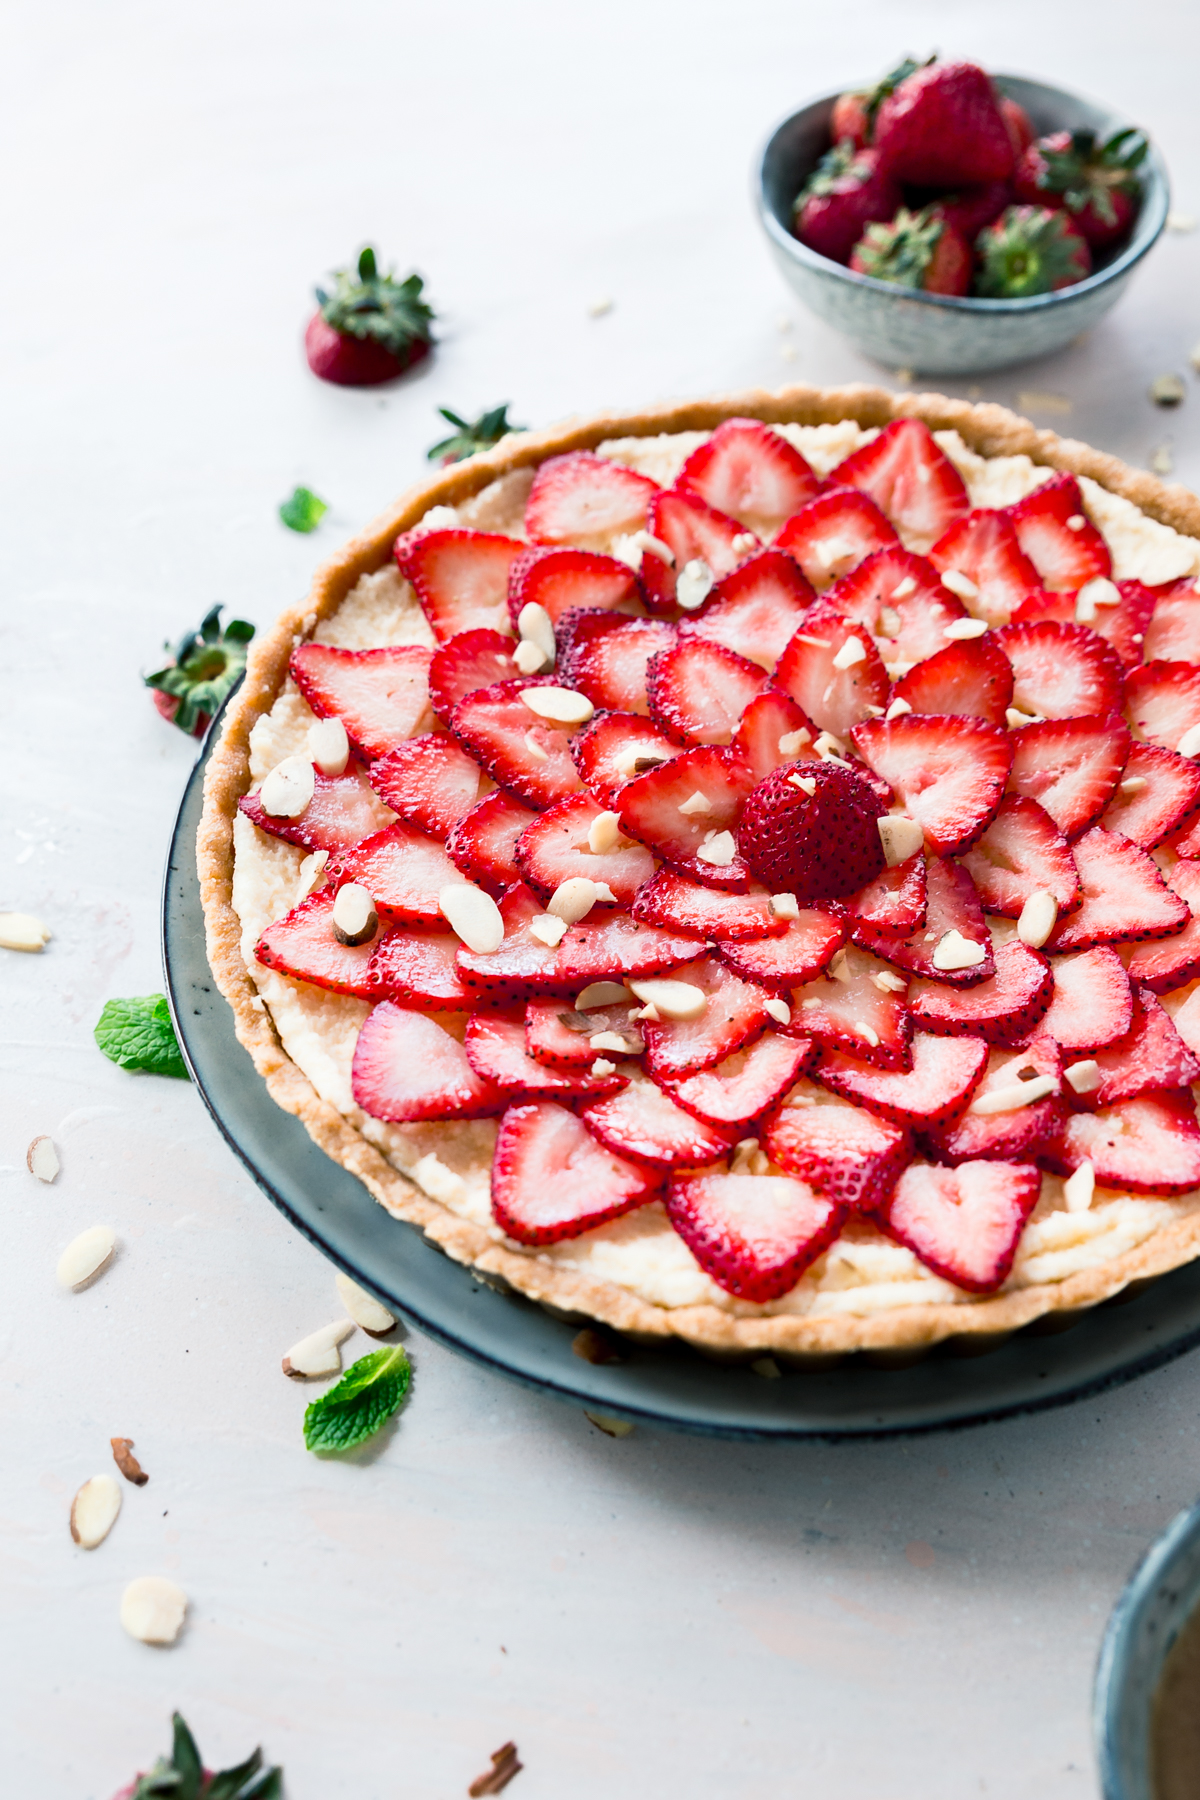 No-Bake Strawberry Mascarpone Tart made with fresh fruit and mascarpone cheese. Perfect for mother's day or any occasion.